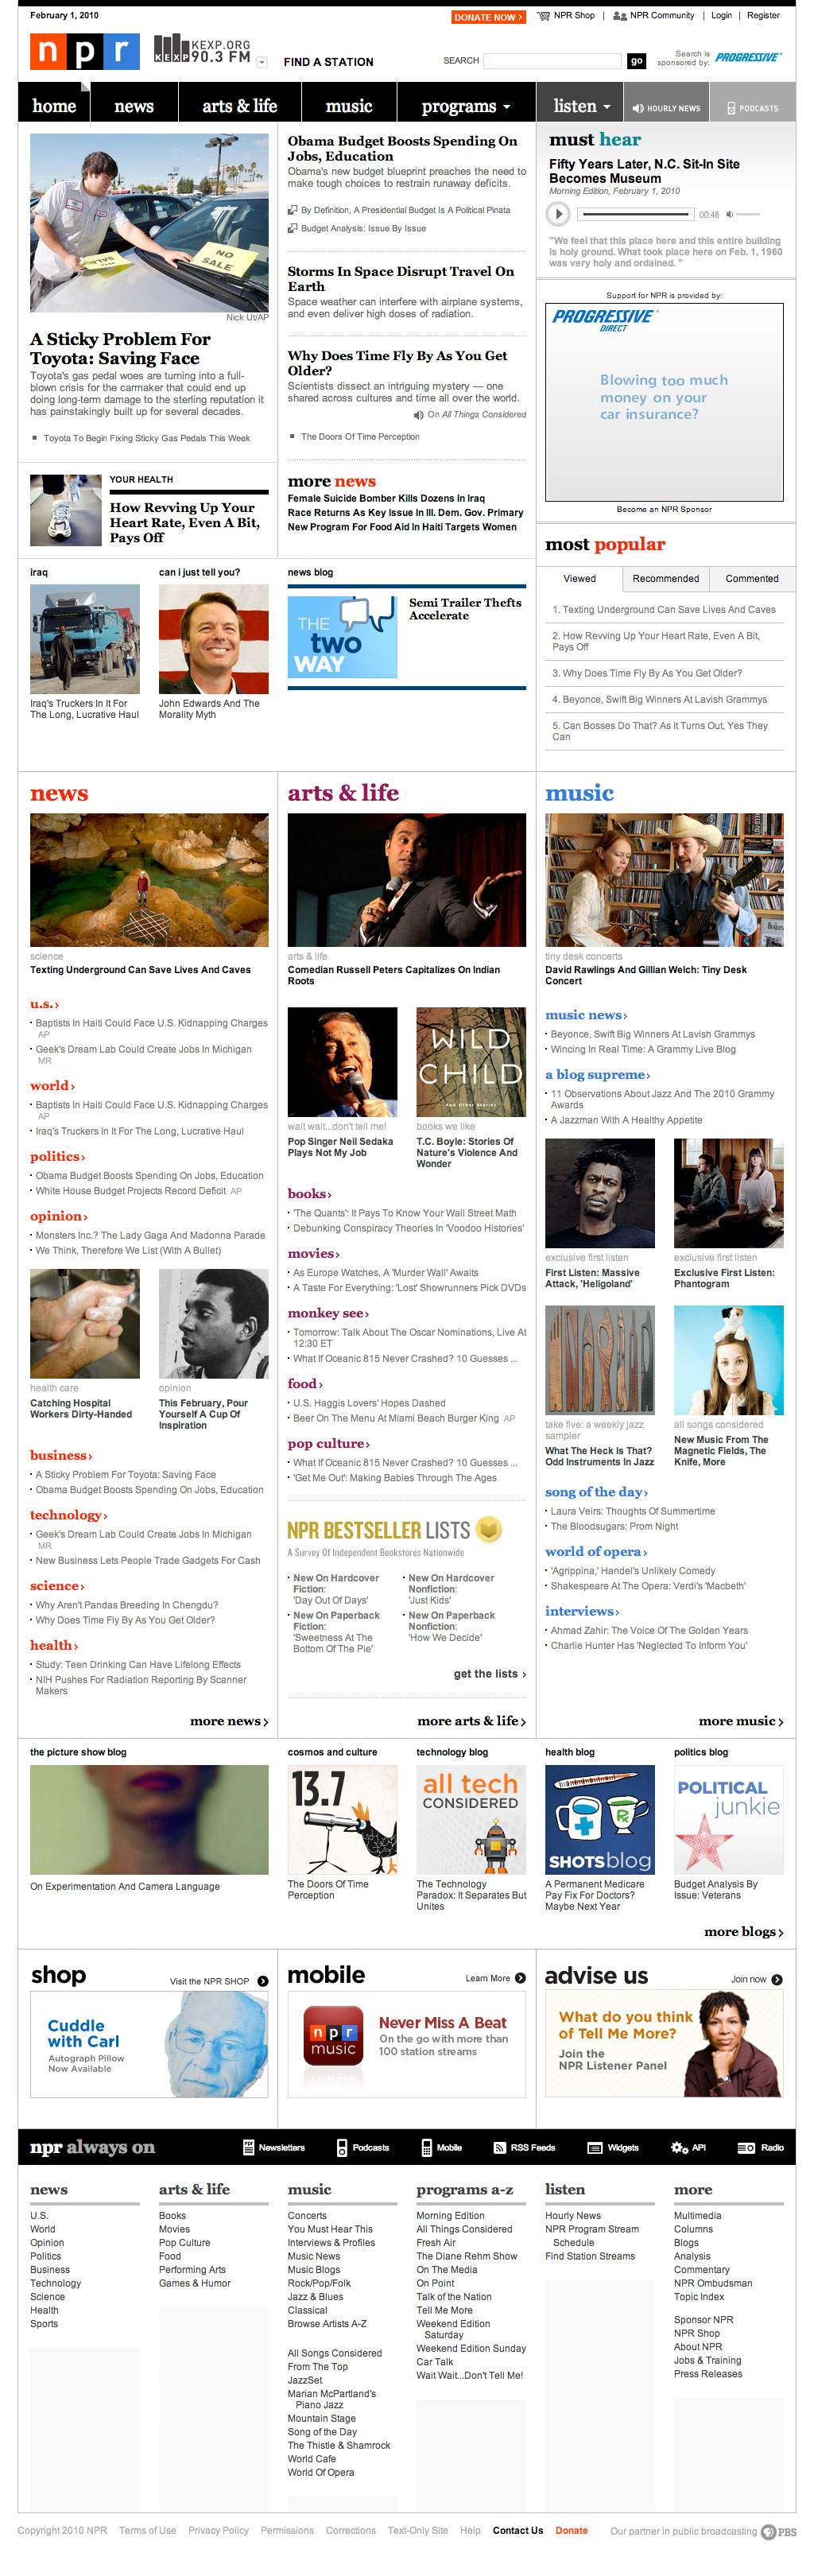 NPR homepage screen cap